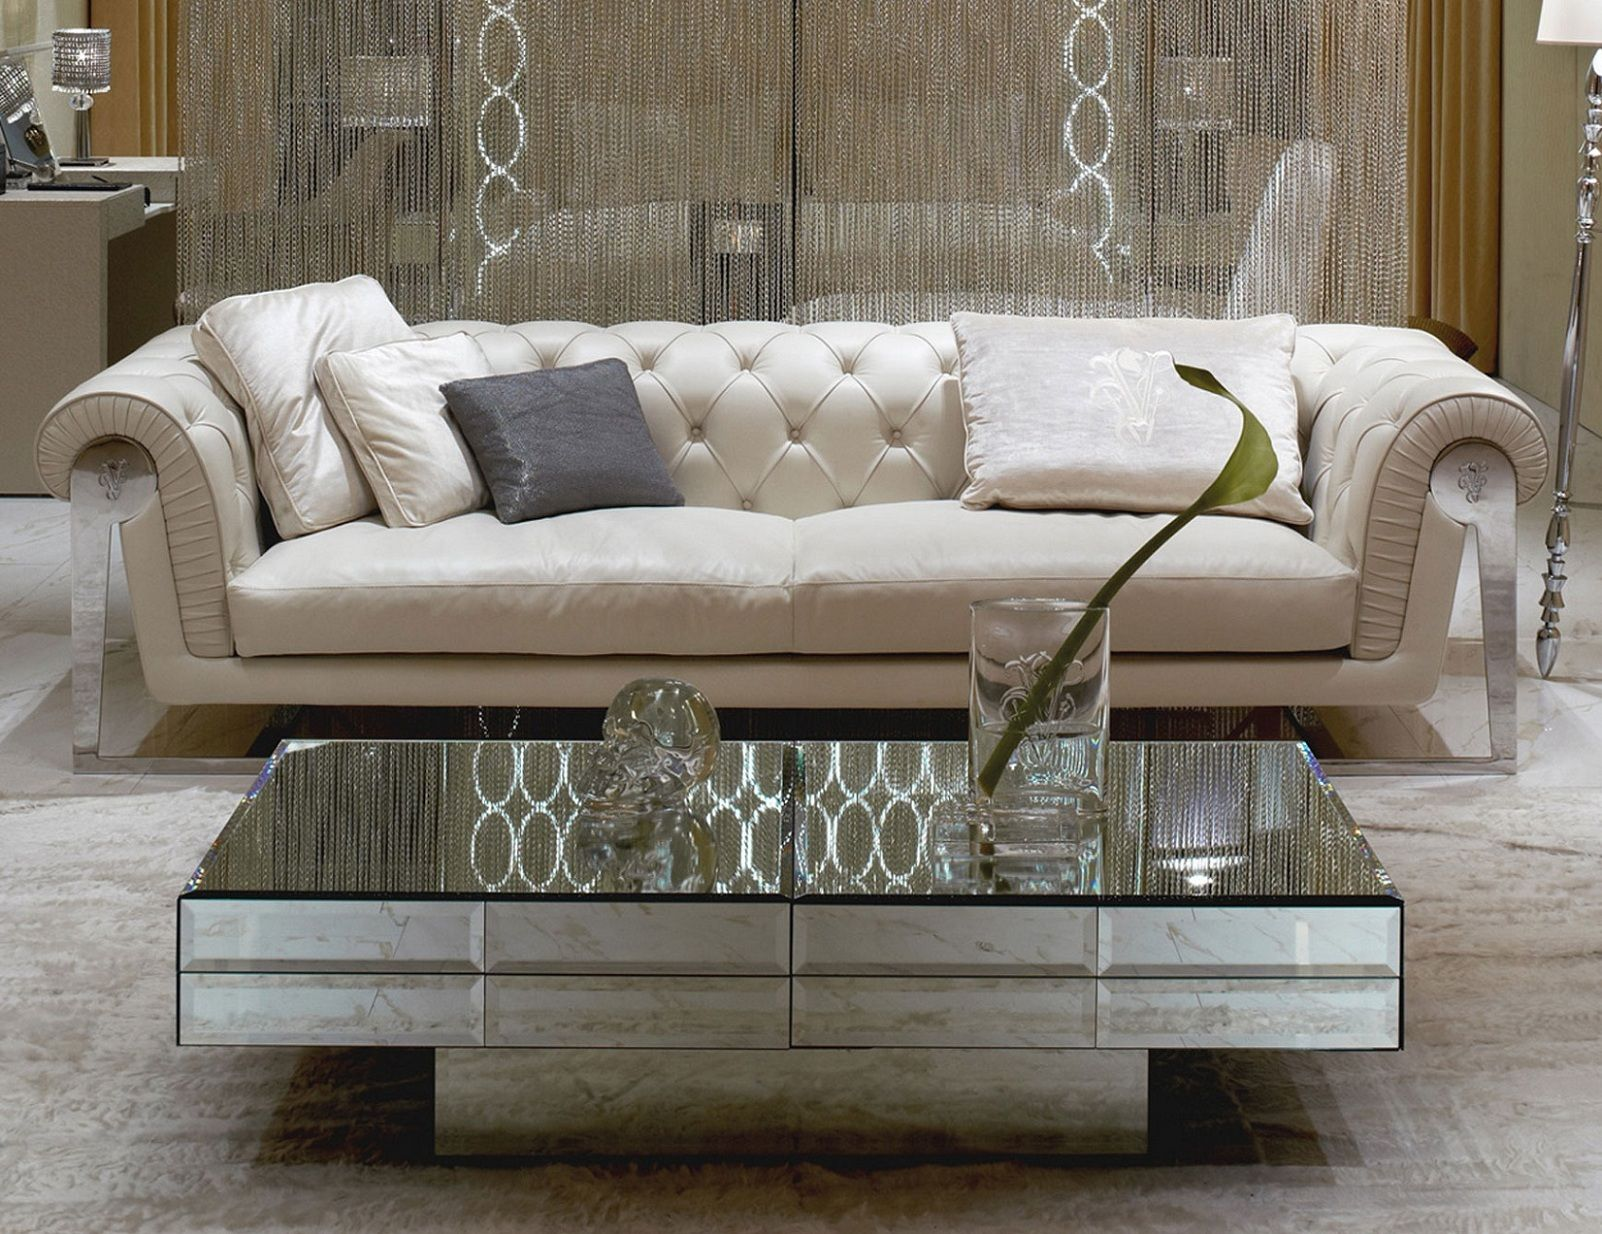 wall glass living room tables. Furniture  Modern Rectangular Glass Coffee Table European Loveseat With Metal Legs Unique Flower Vase Fabric Blind Interesting and Inspiring 58 best Tables images on Pinterest Accent tables Bedside